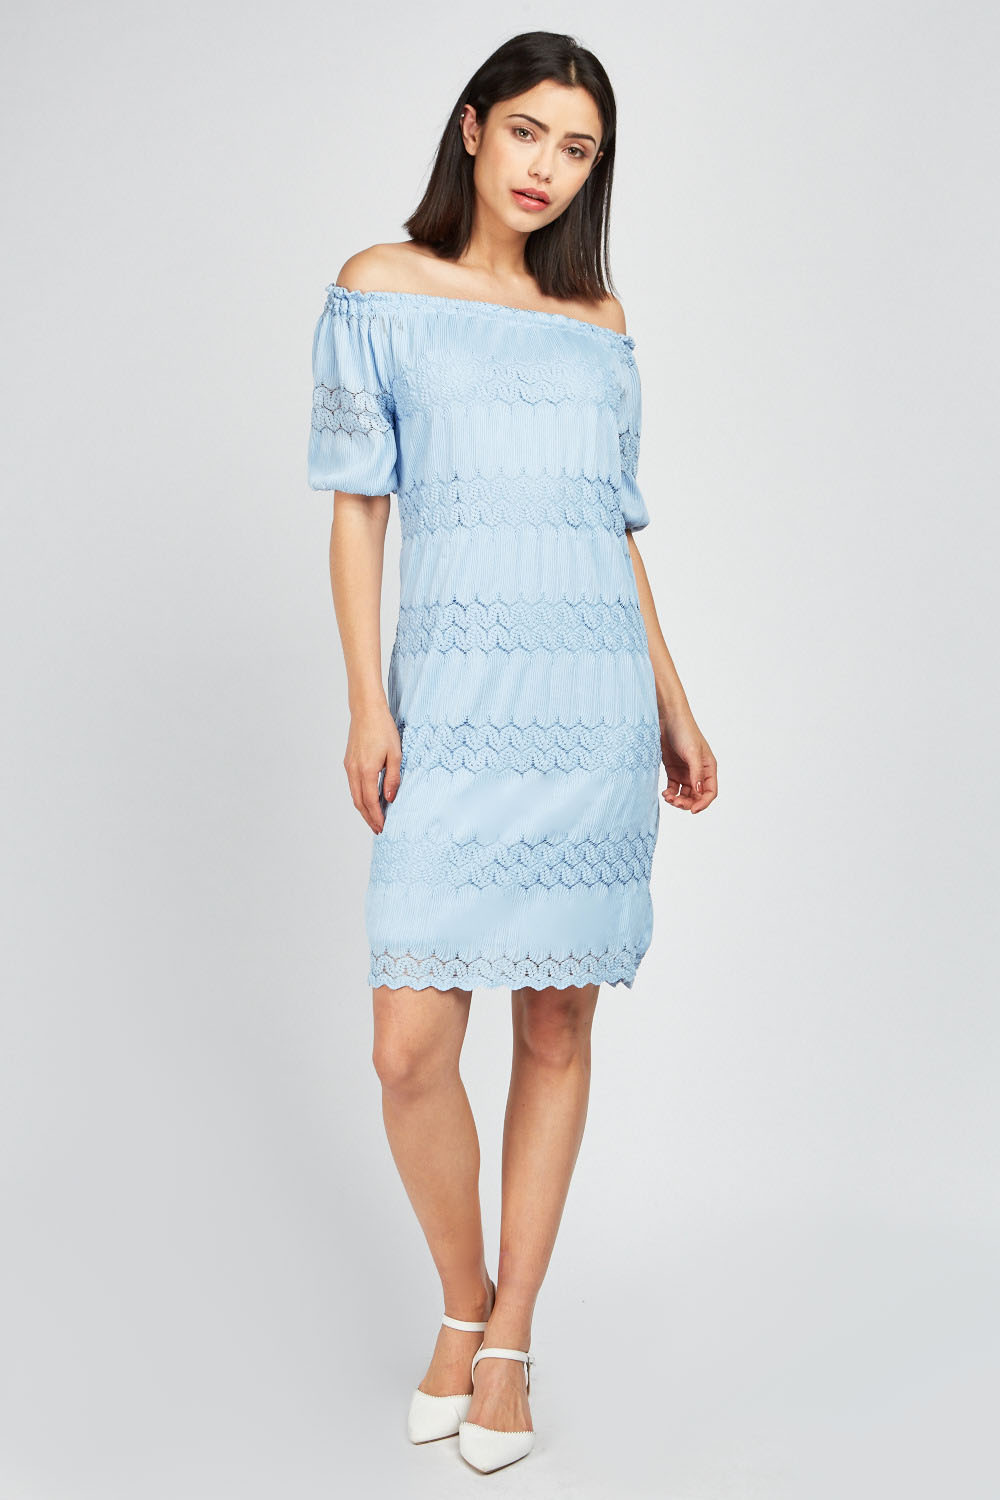 b00e75f5bb Off Shoulder Lace Contrast Dress - Blue or White - Just £5